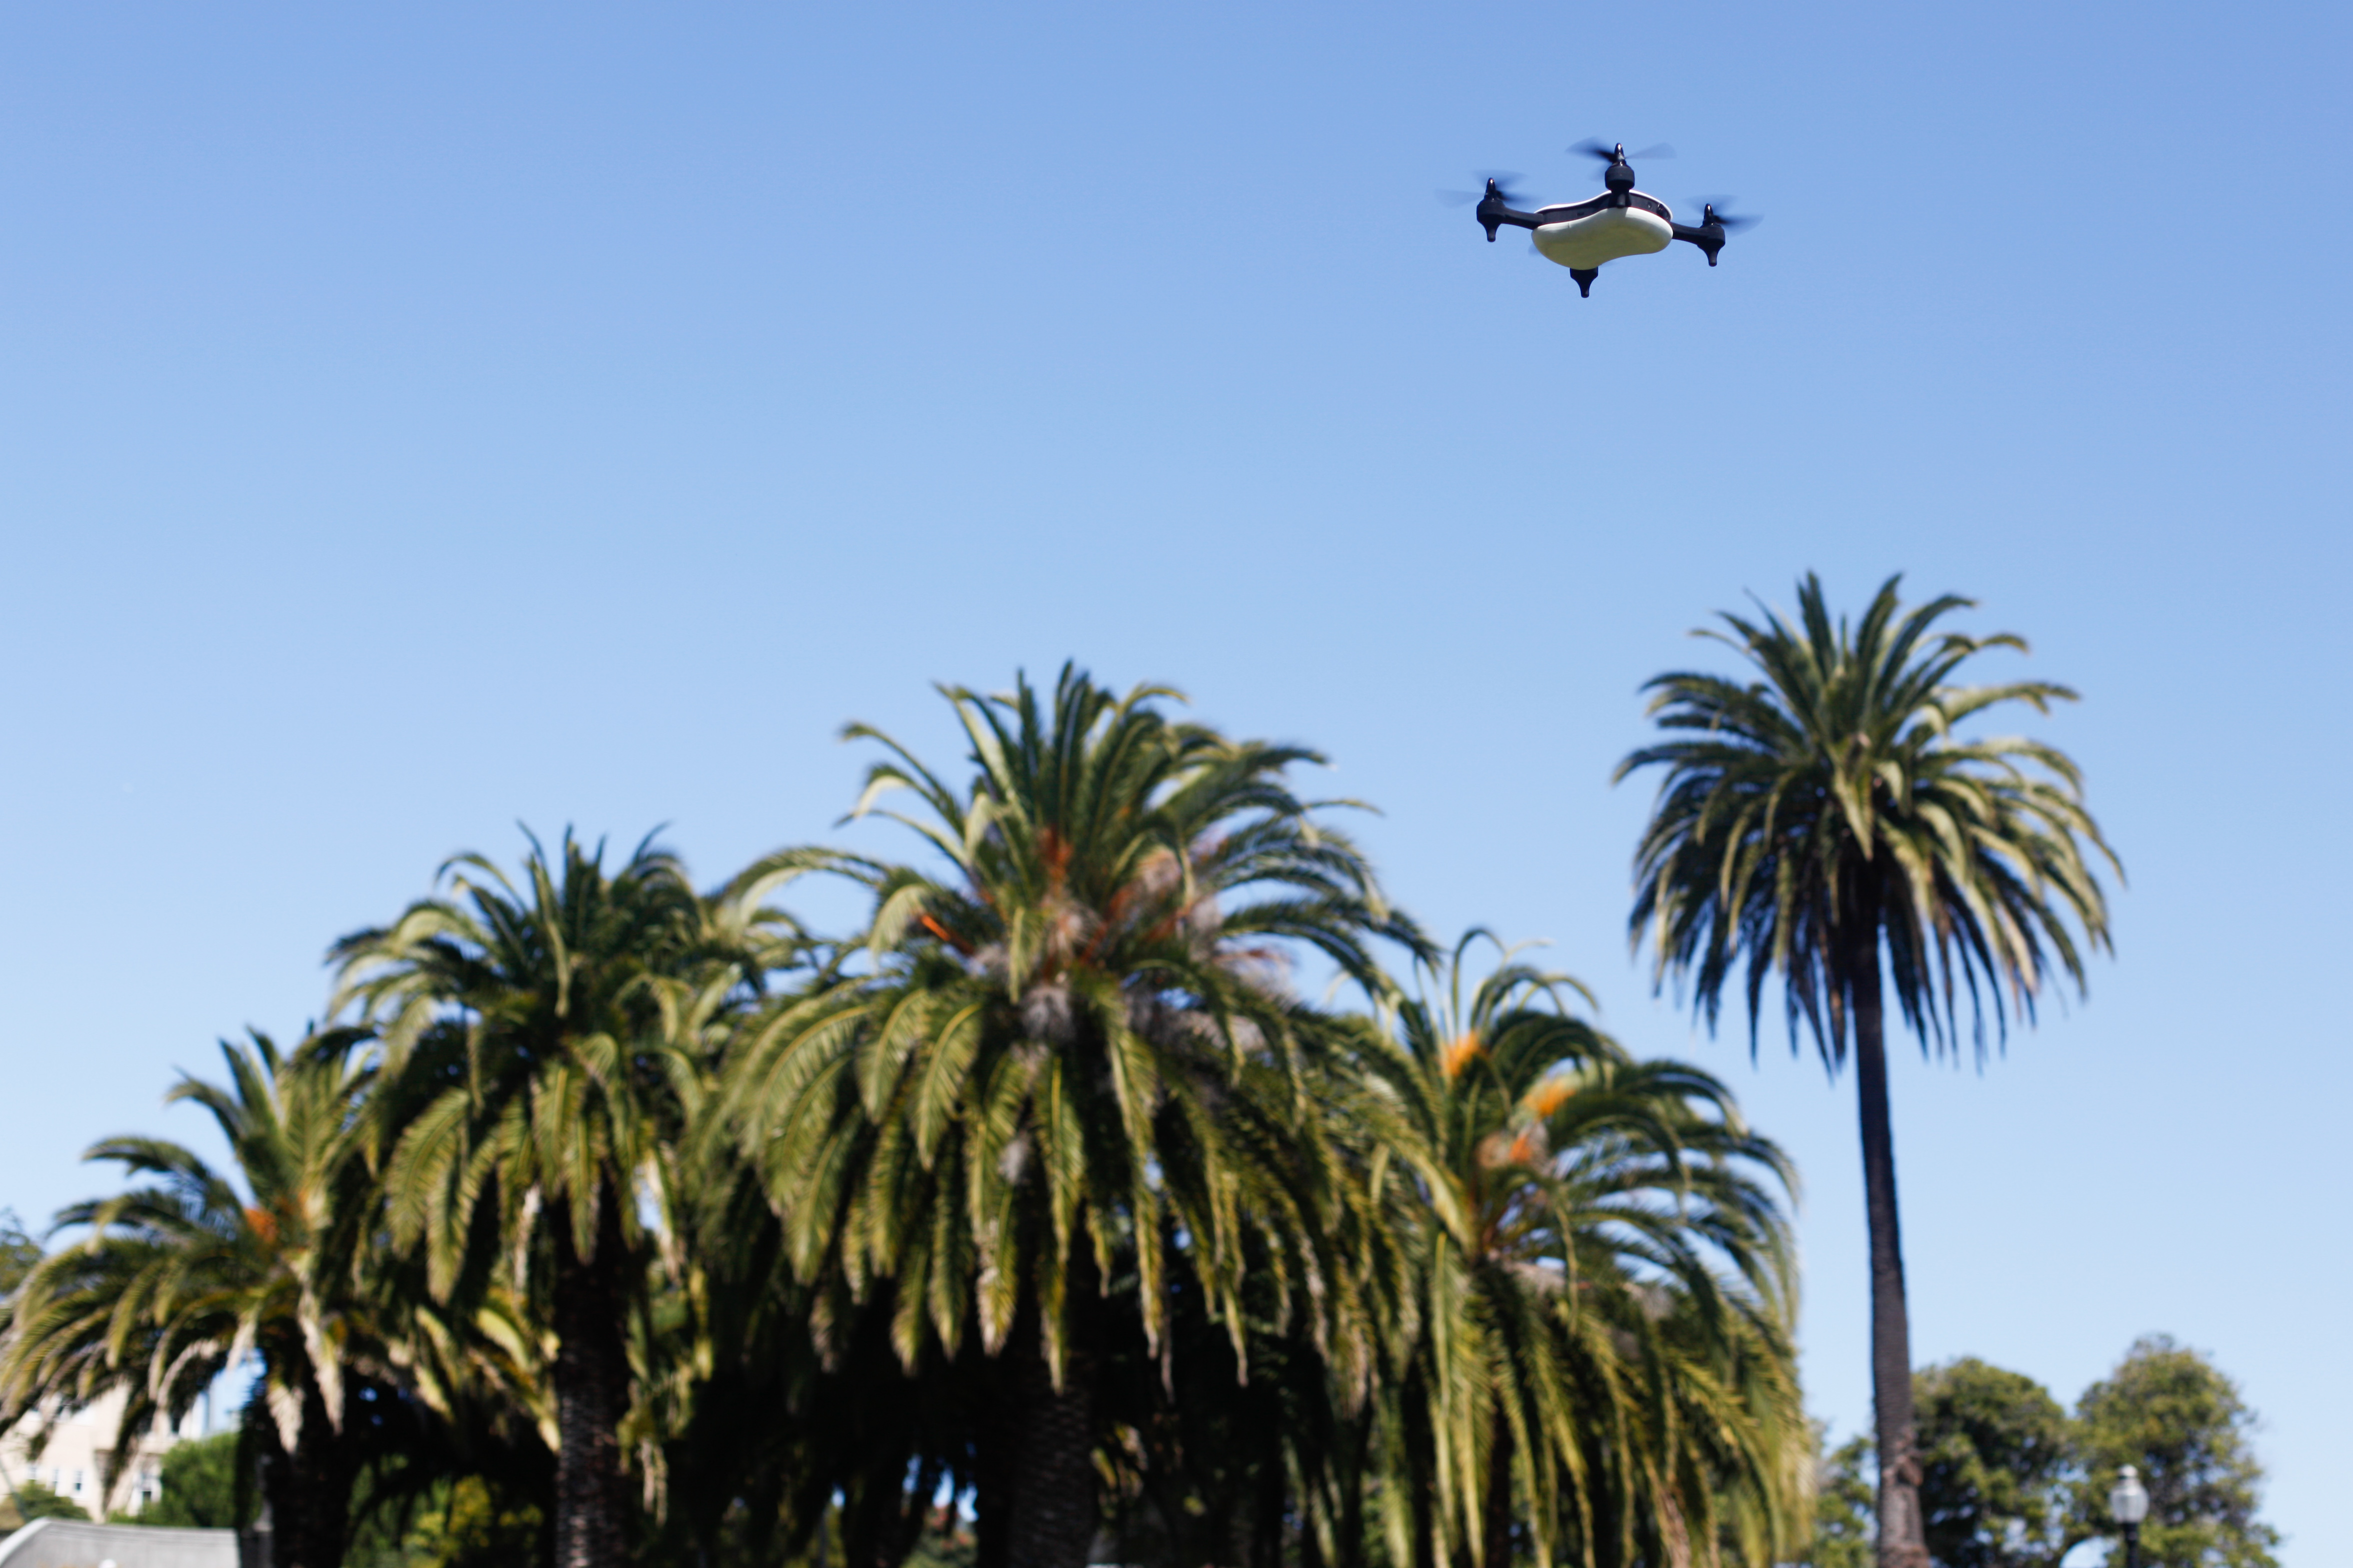 Should you really be worried about drone sightings? Here's what you need to know about that report